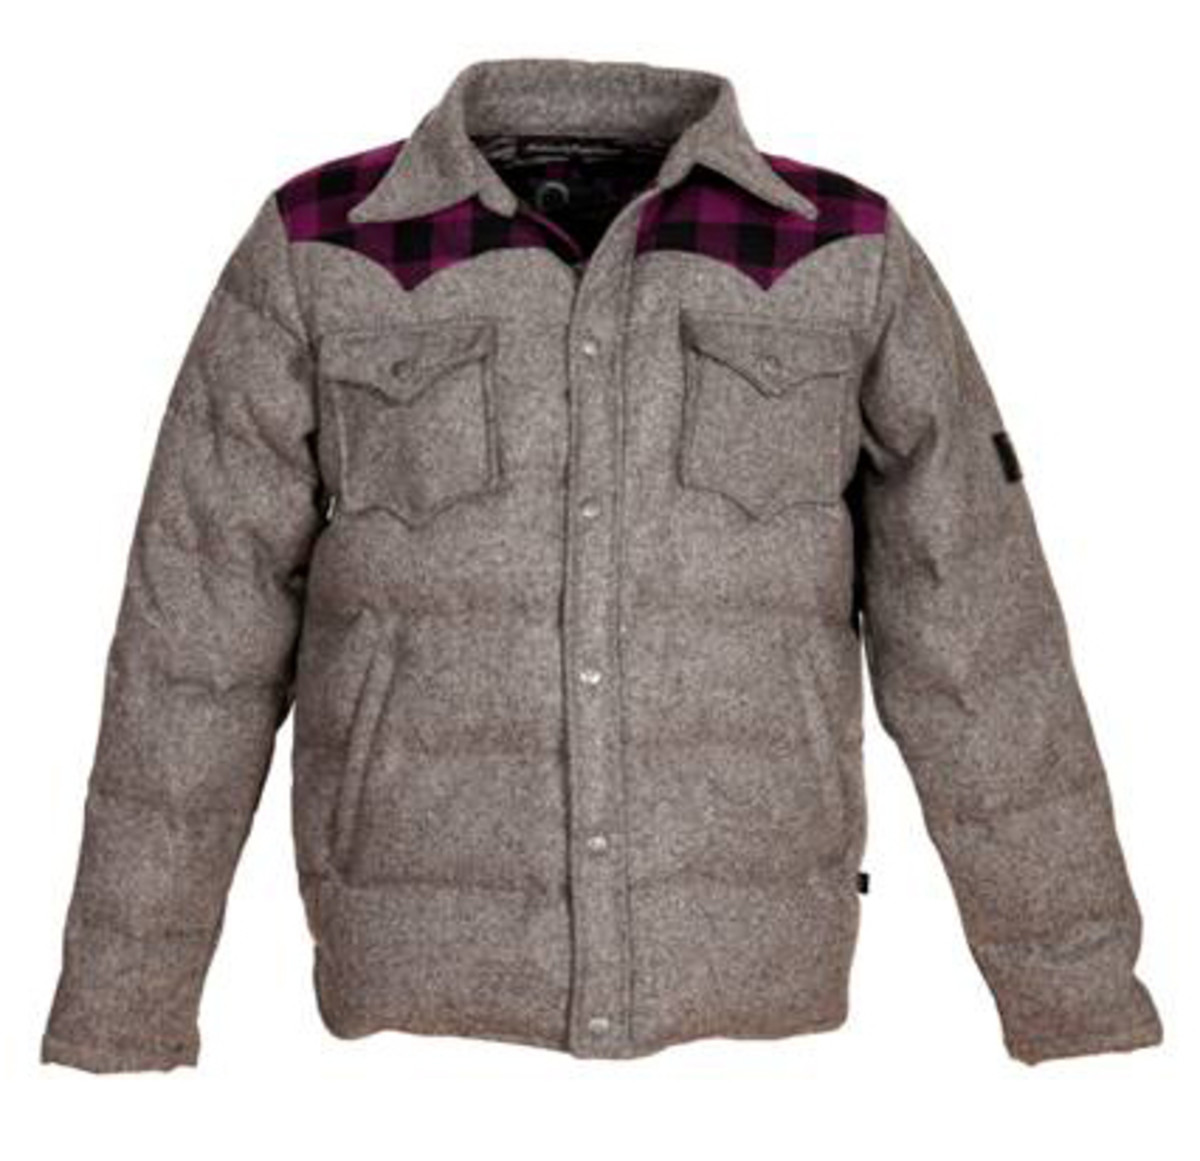 penfield-fall-winter-2009-01